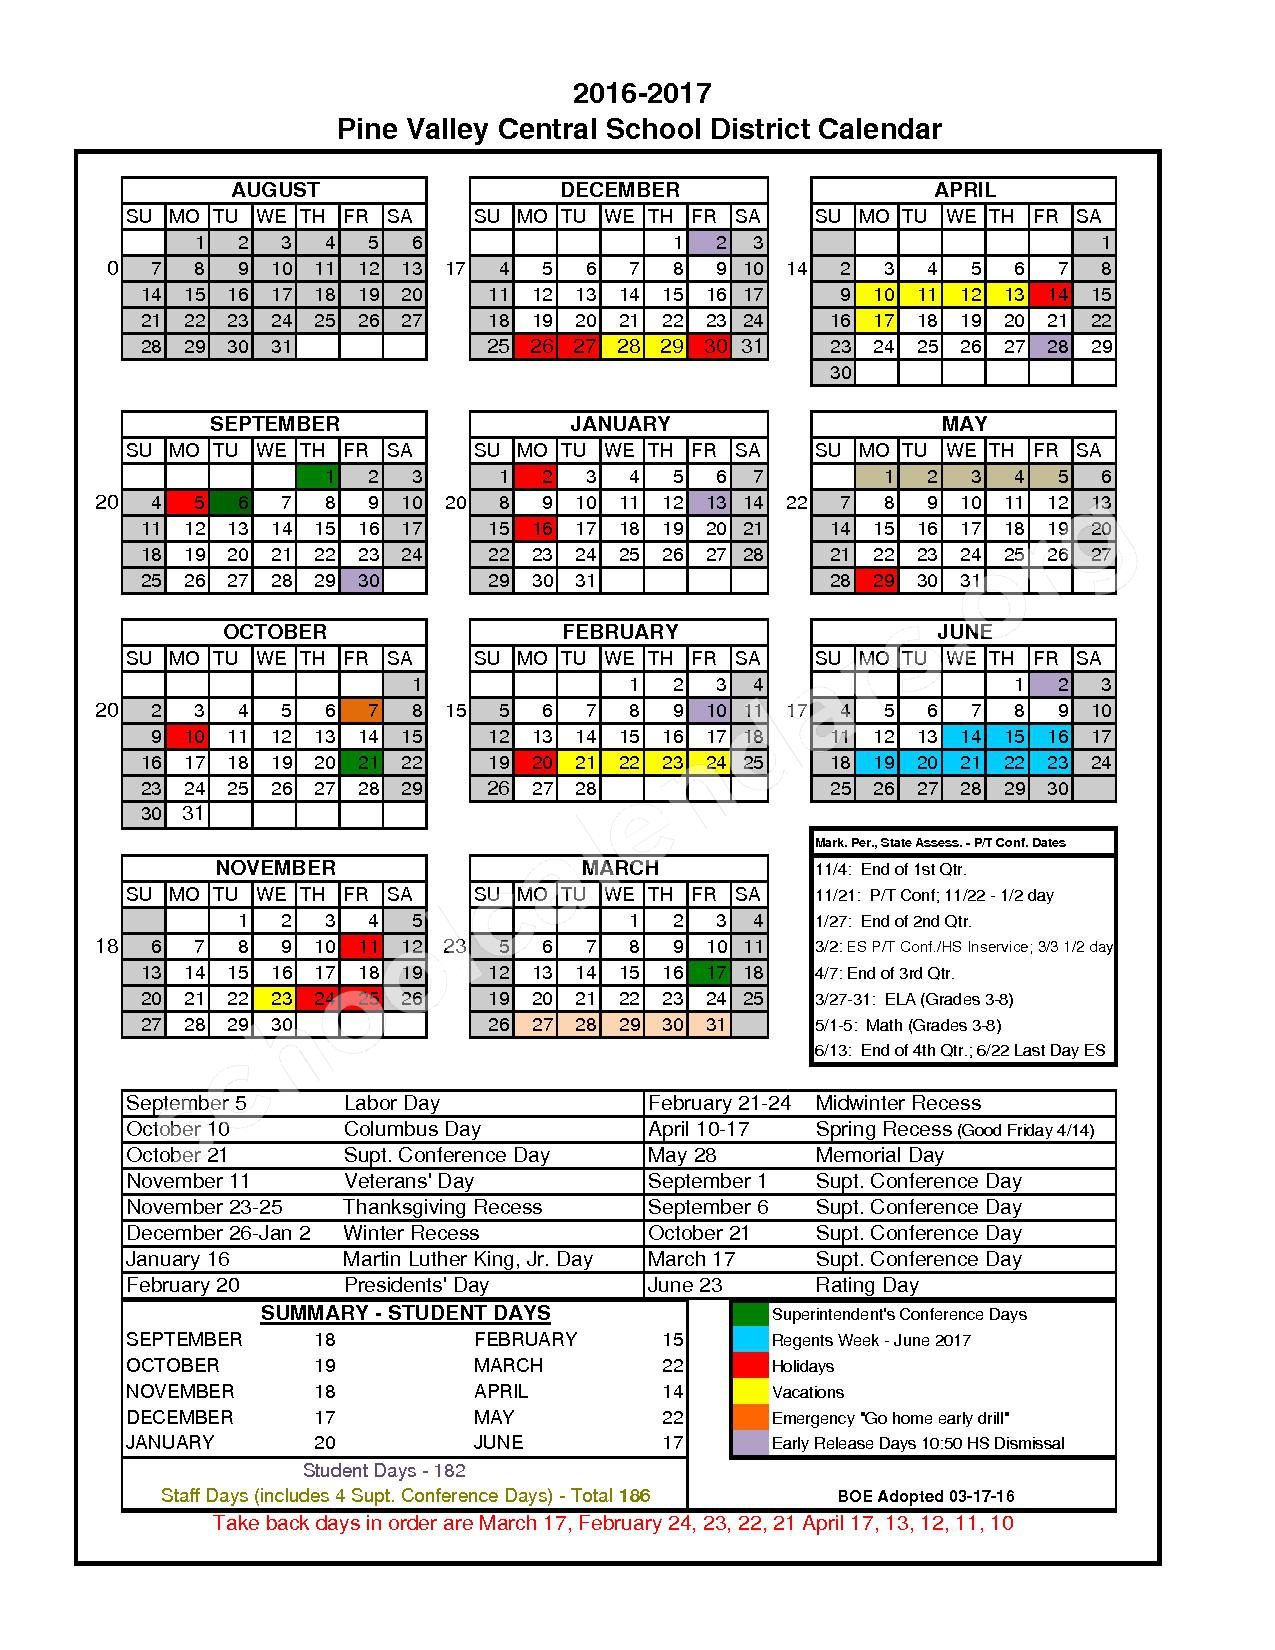 2016 - 2017 District Calendar – Pine Valley Central School District (South Dayton) – page 1